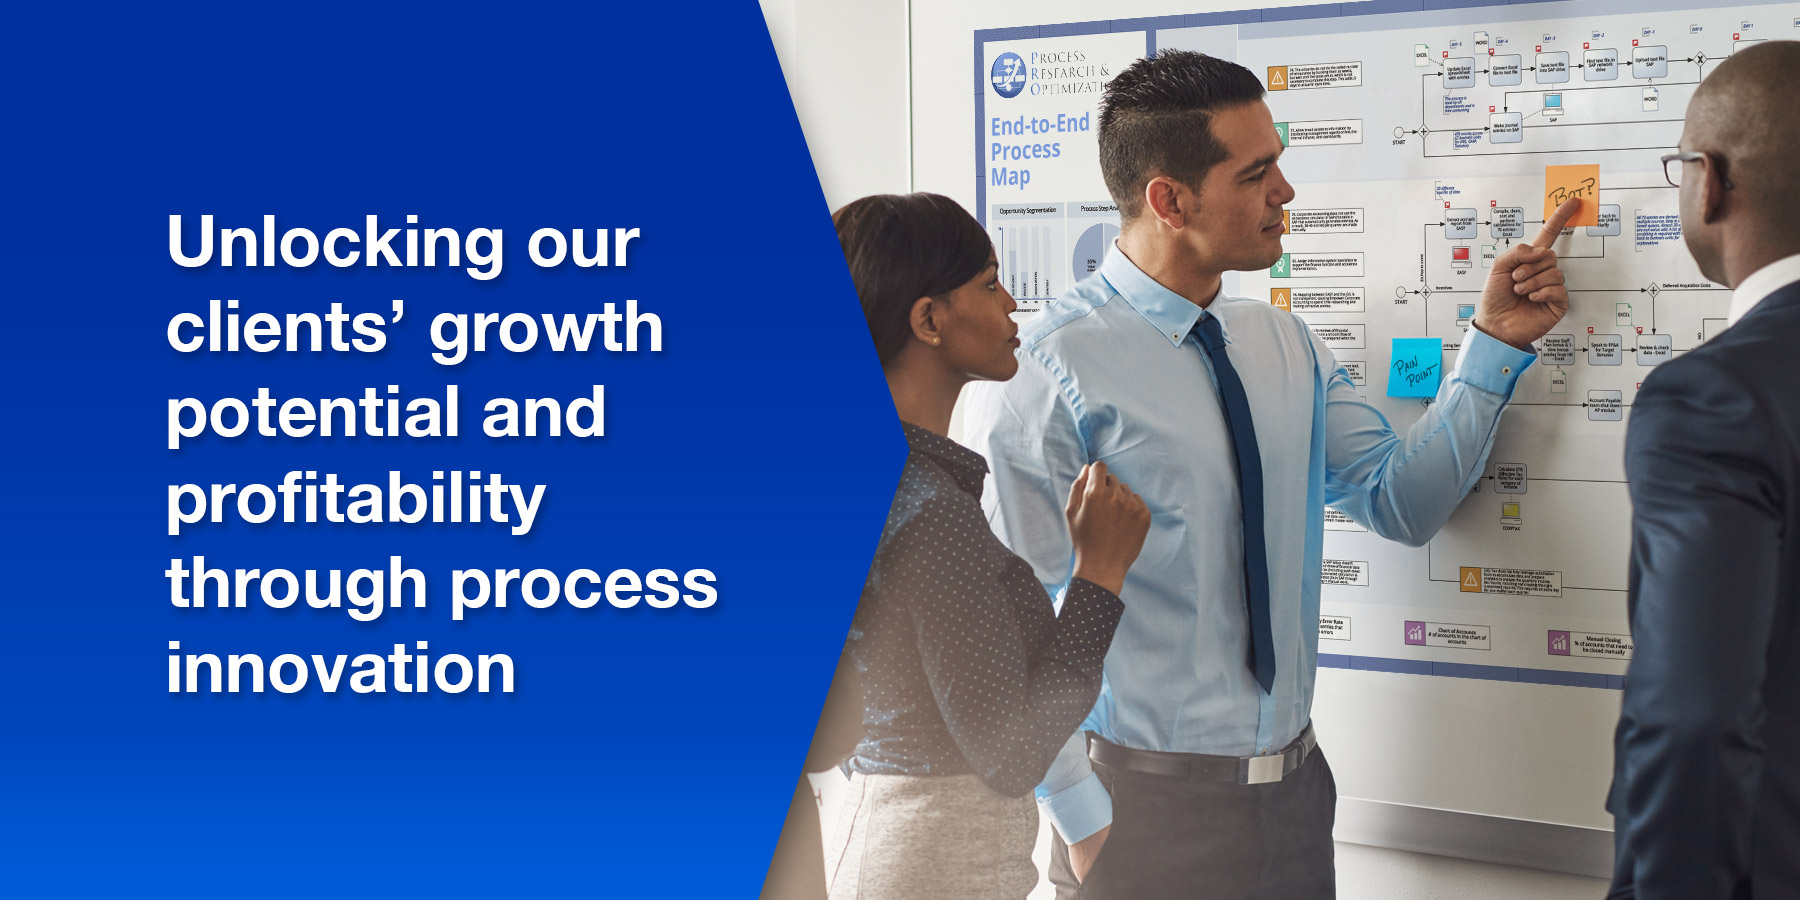 Unlocking our clients' growth potential and profitability through process innovation